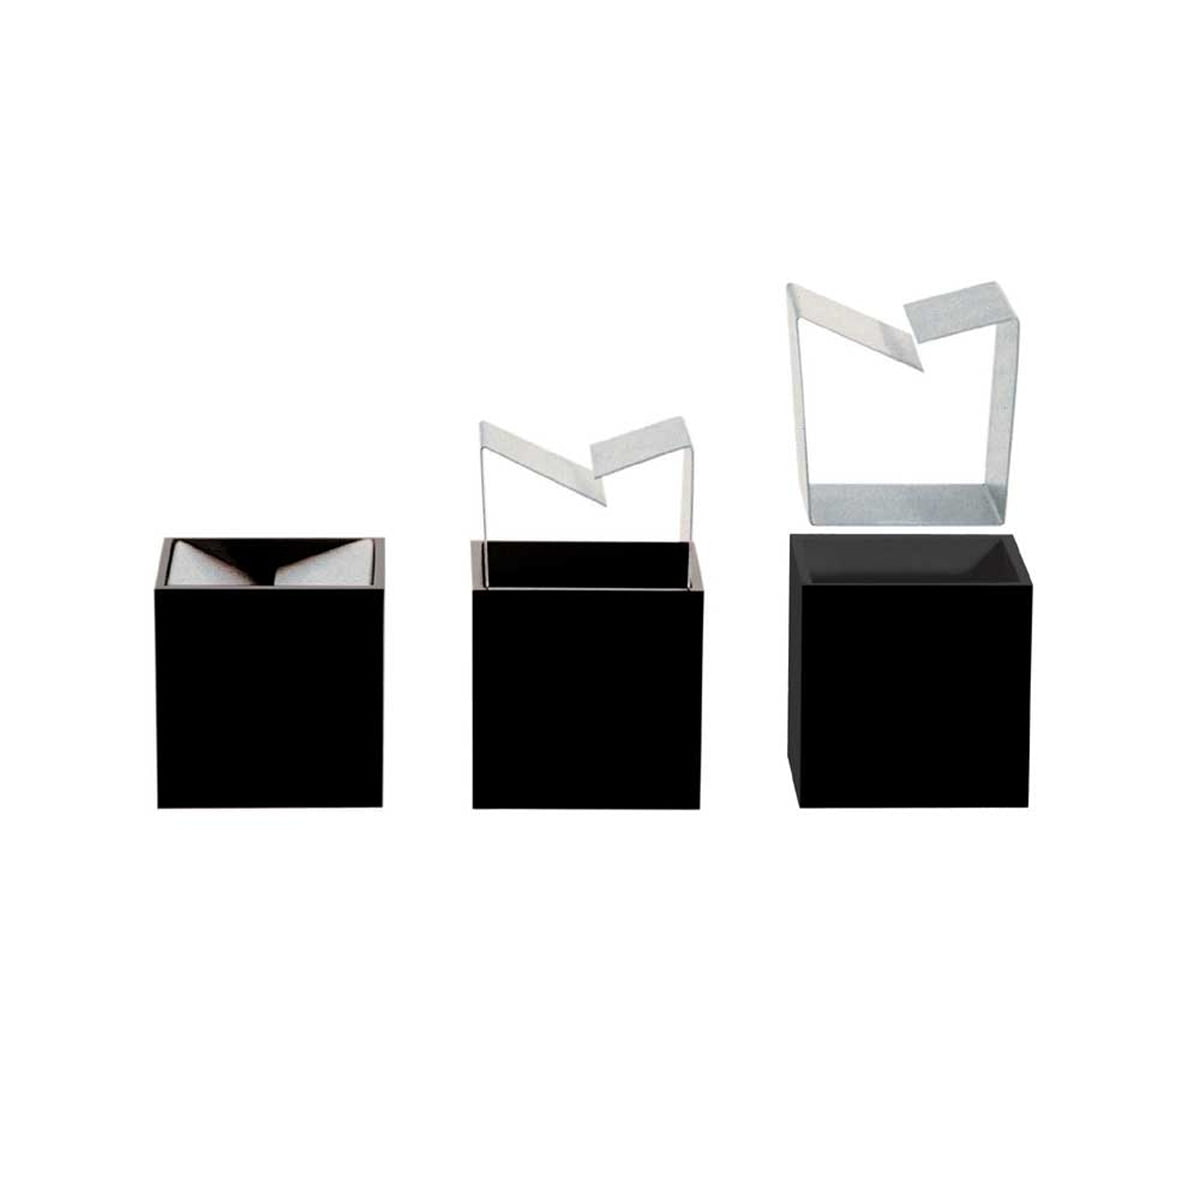 Table ashtray danese cubo by bruno munari for Danese design milano